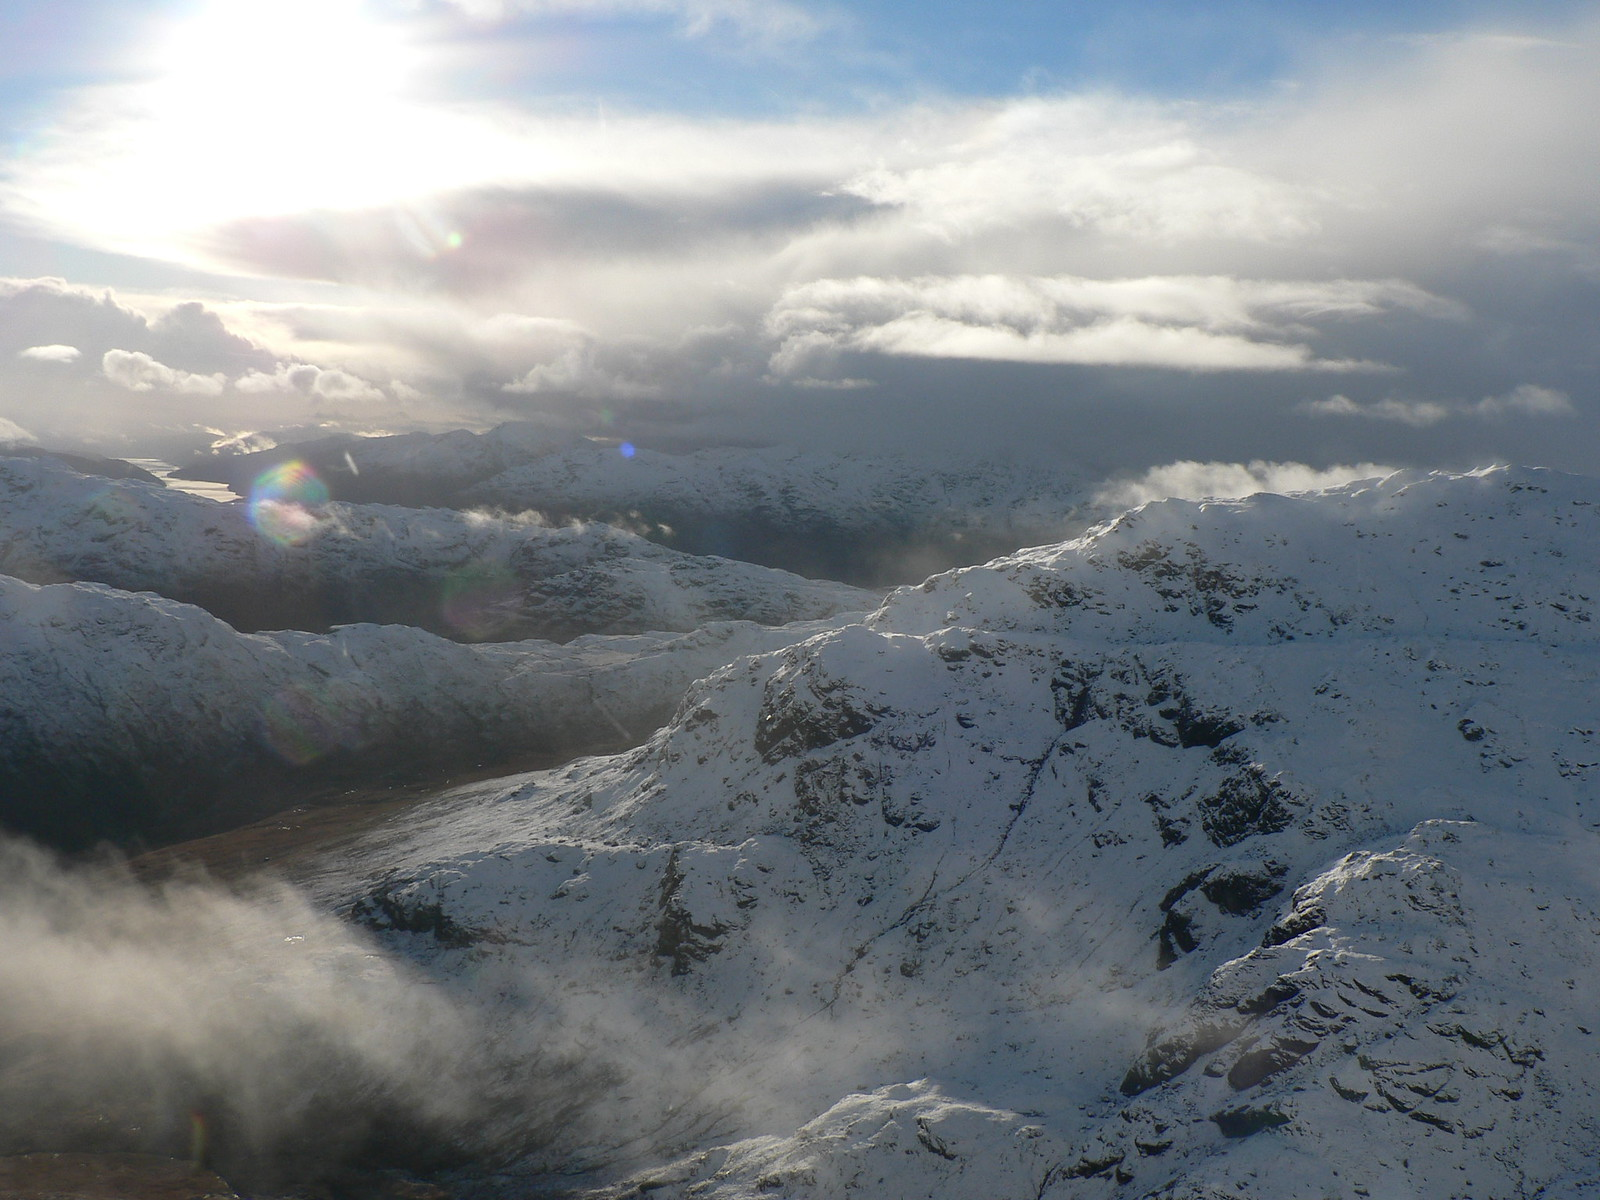 Great views when the clouds cleared!